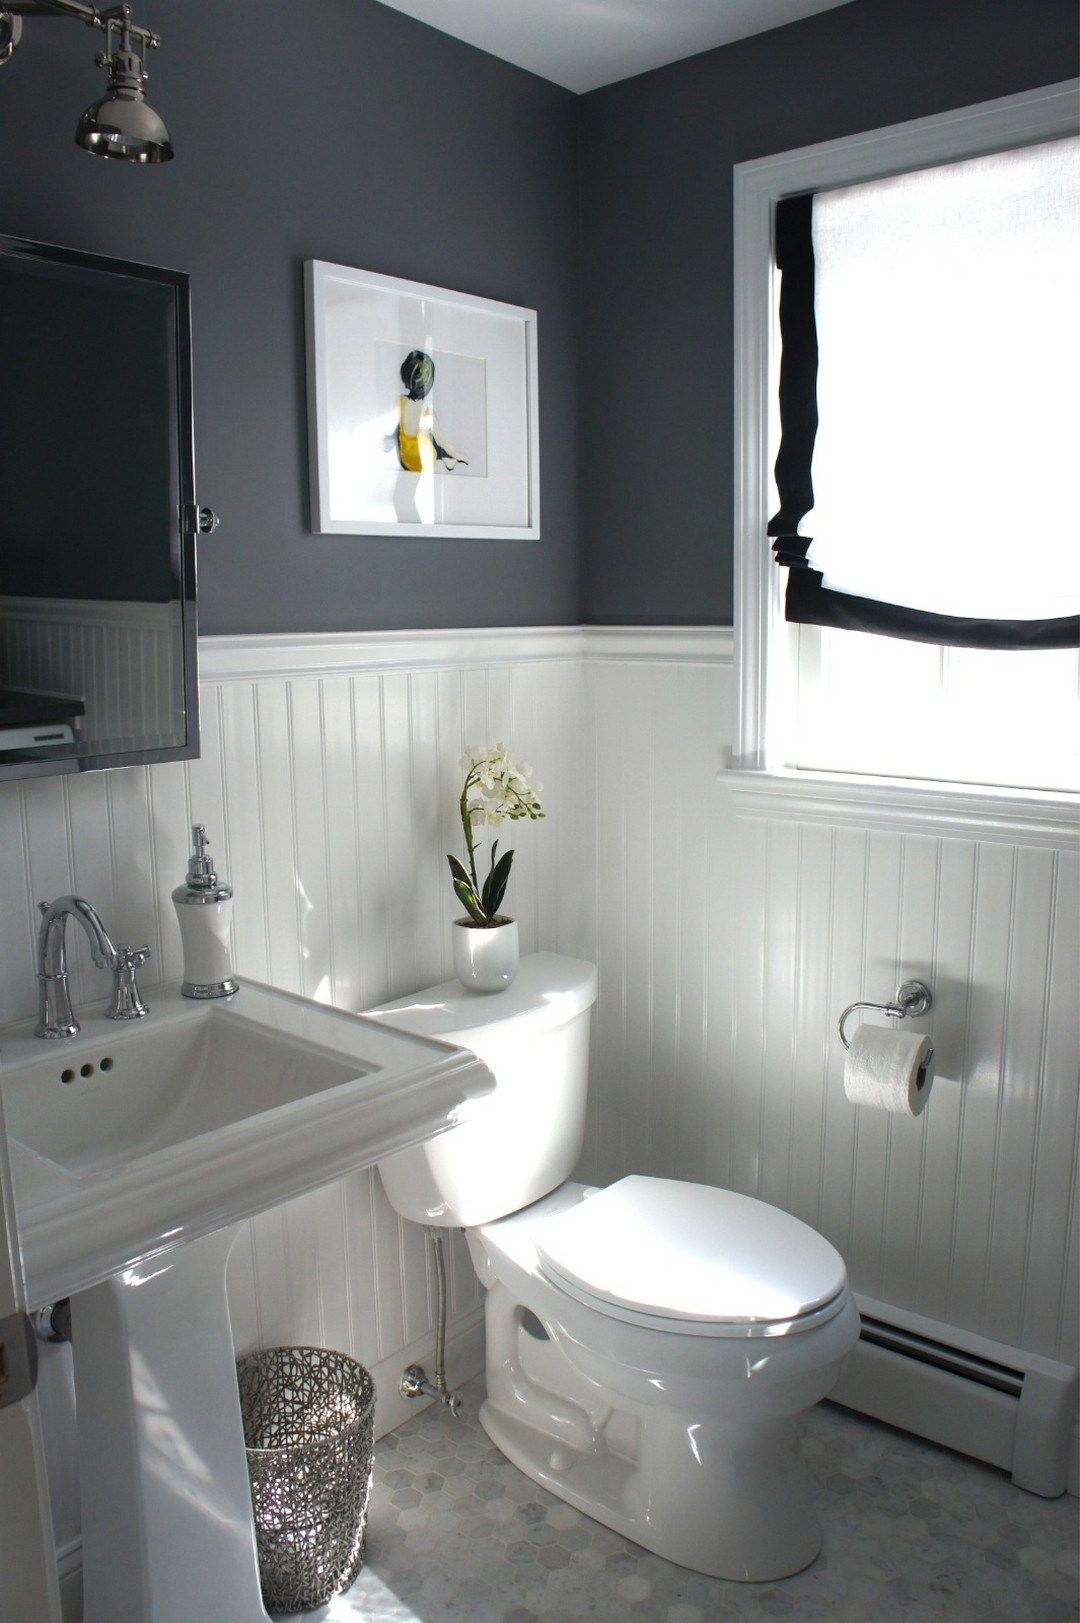 99 small master bathroom makeover ideas on a budget 48 for Small bathroom makeovers